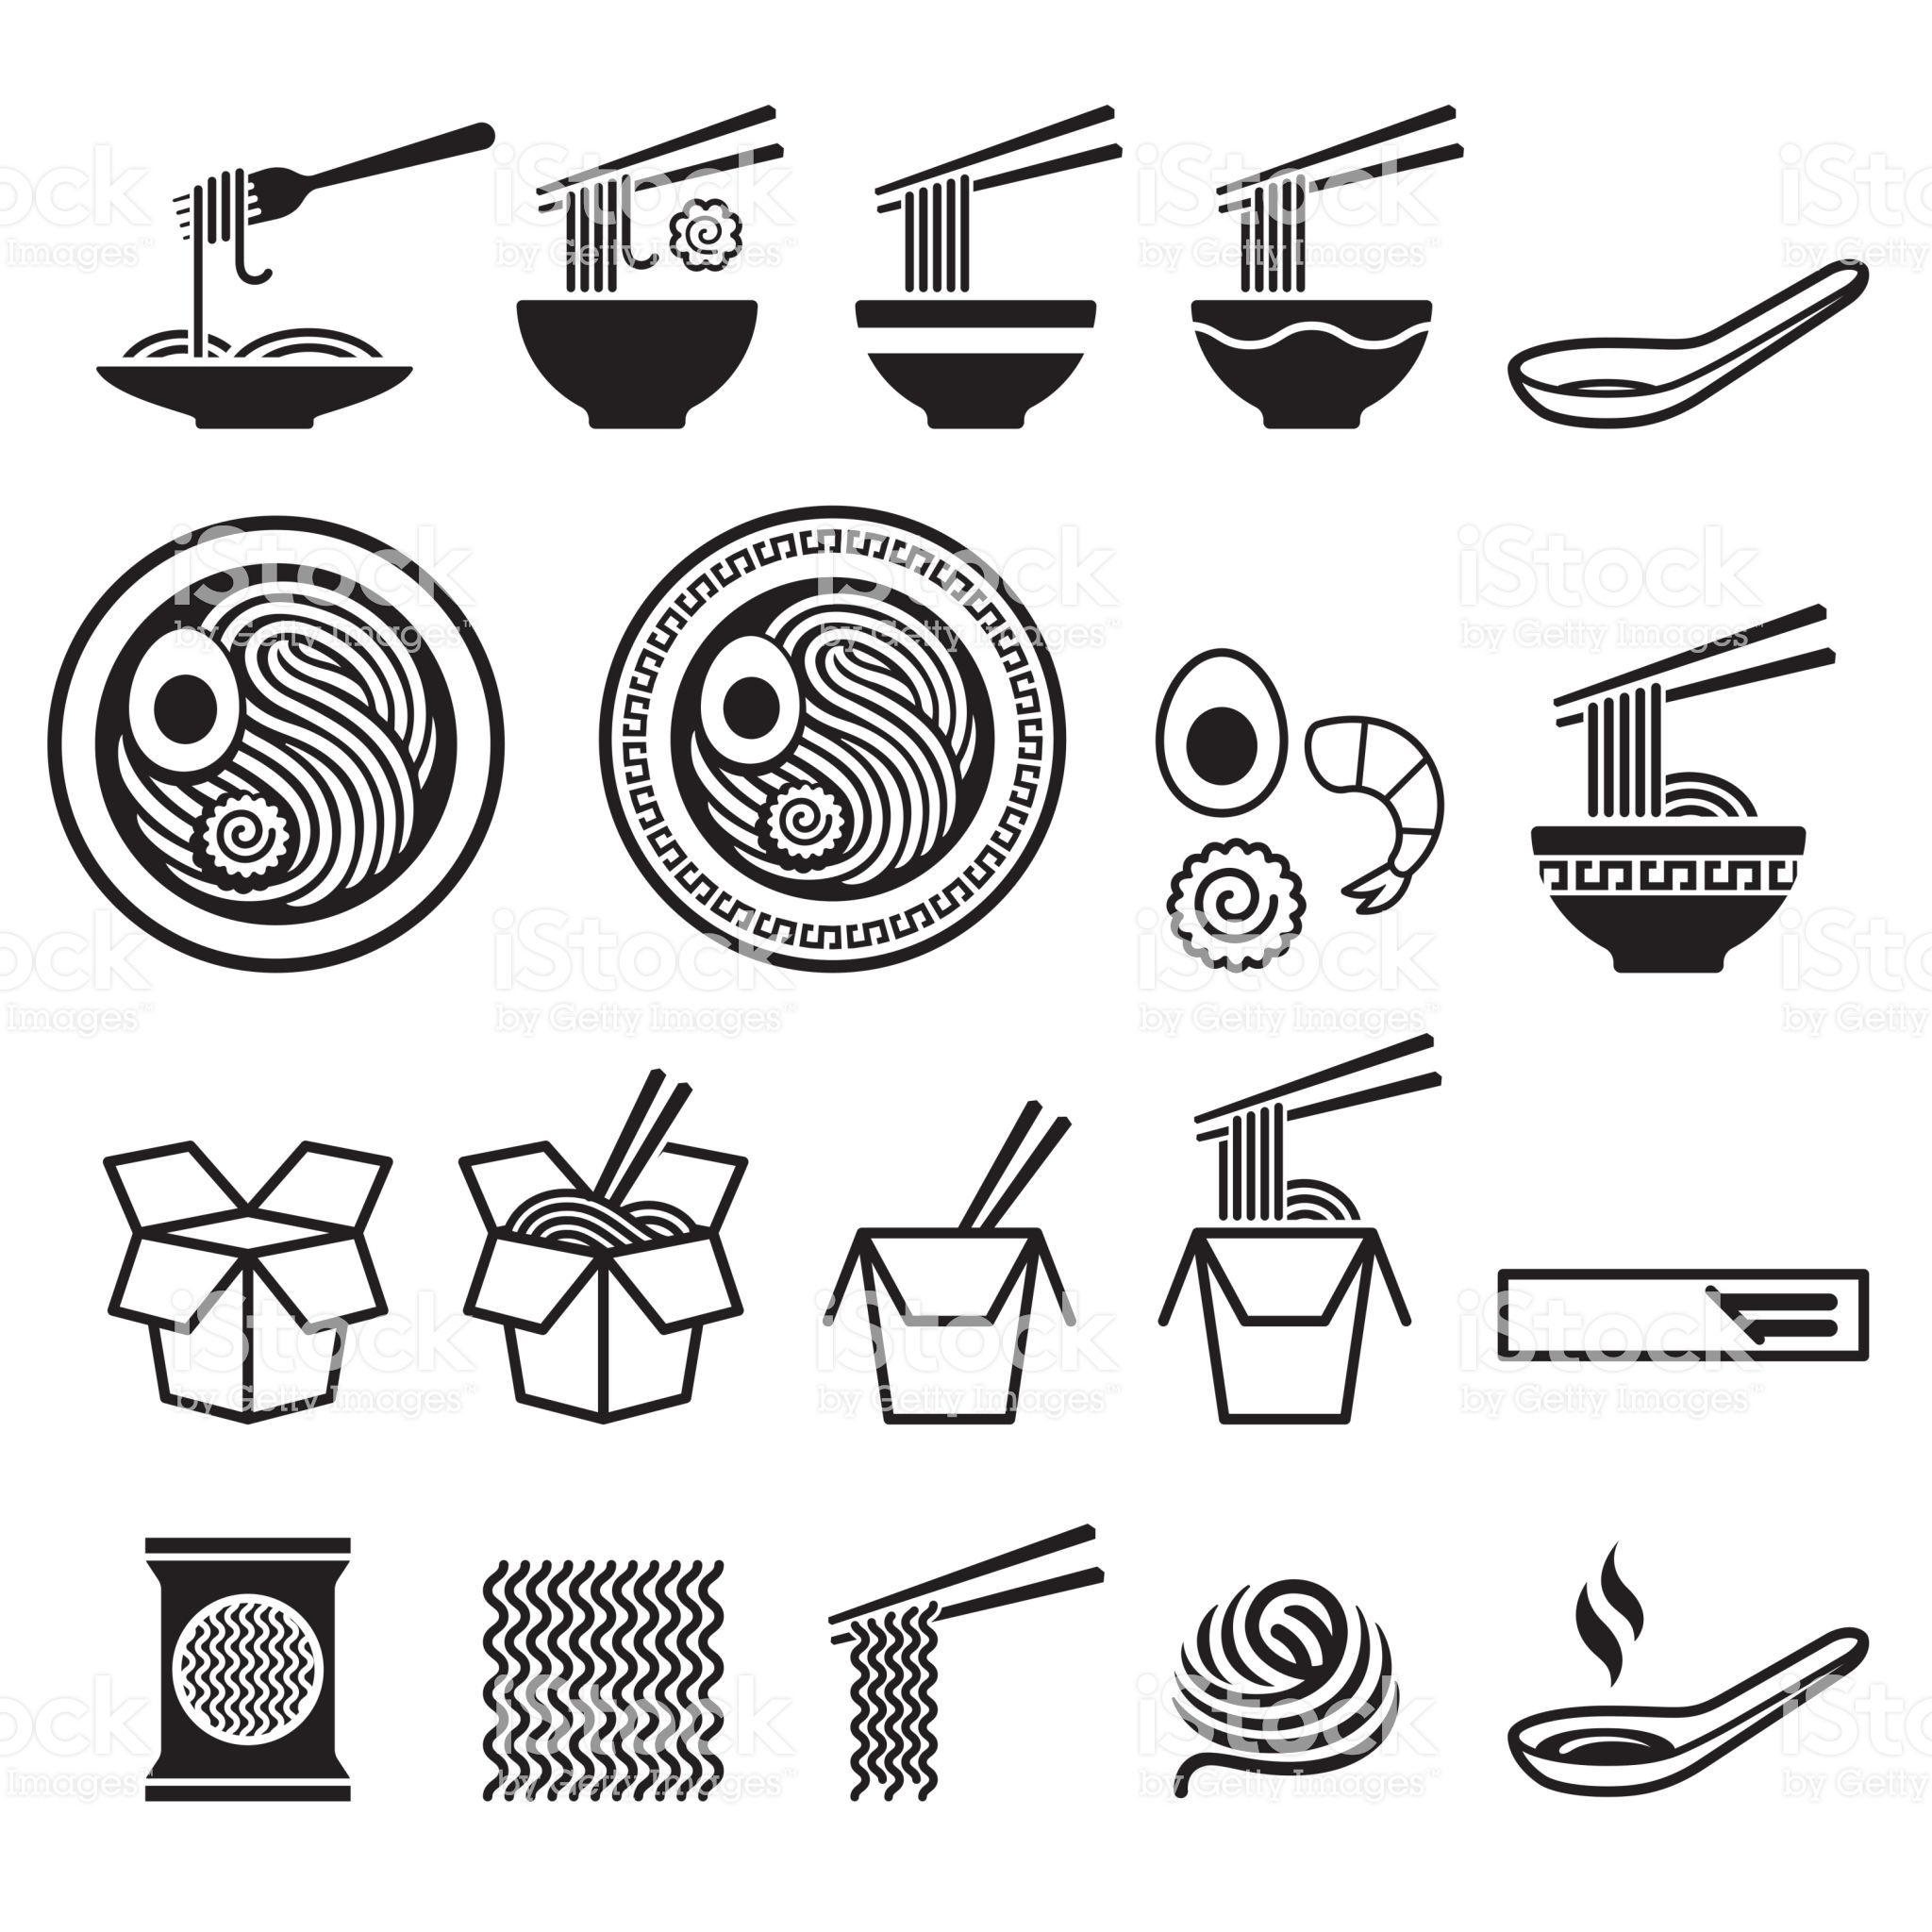 Noodle icons set. royalty-free noodle icons set stock vector art & more images of pasta